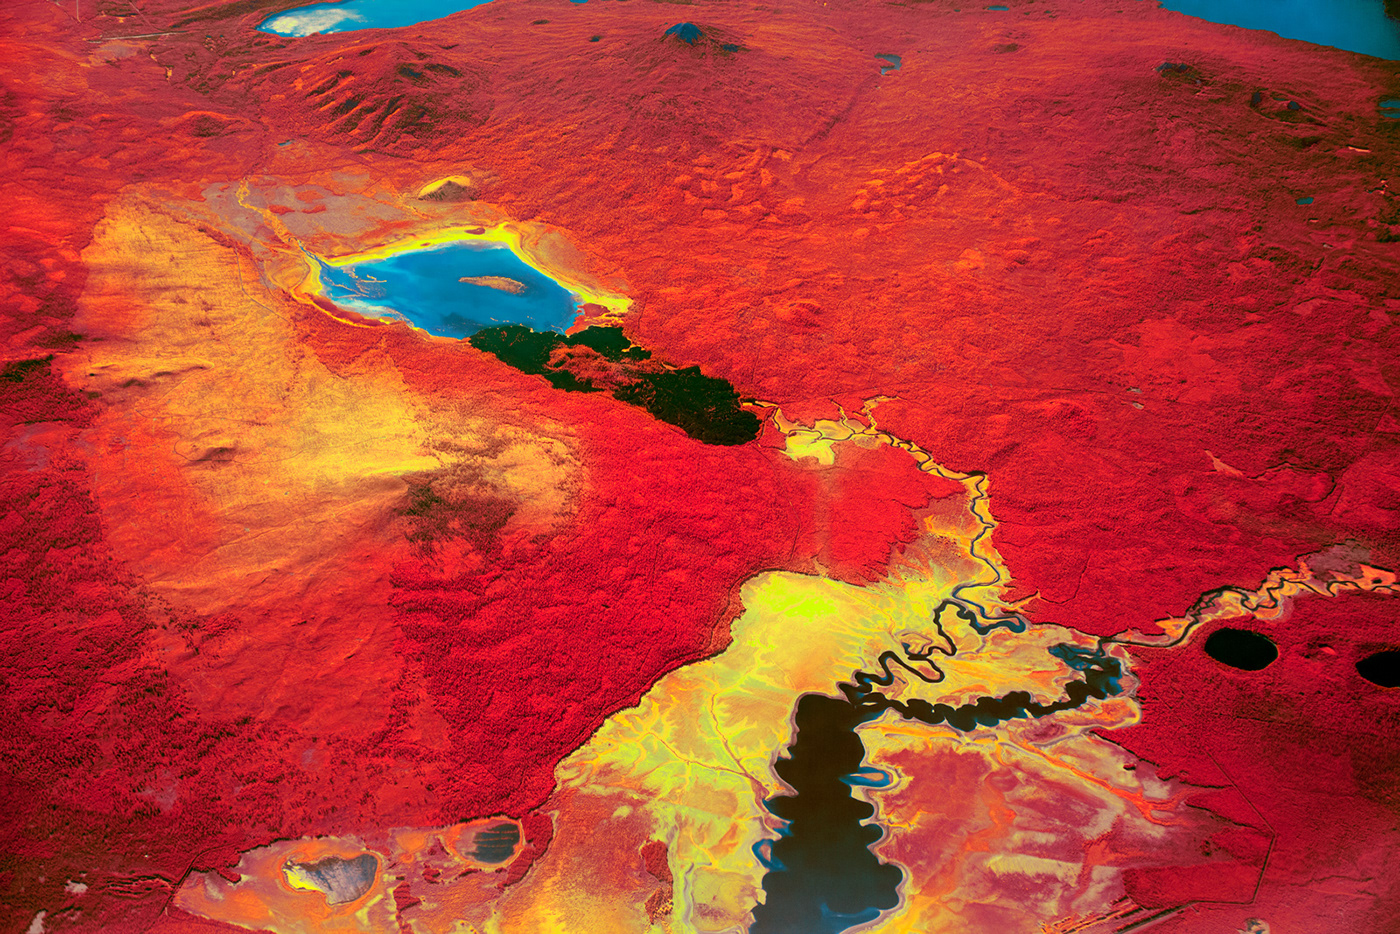 Vivid lakes and rivers photograph shot from an aerial perspective